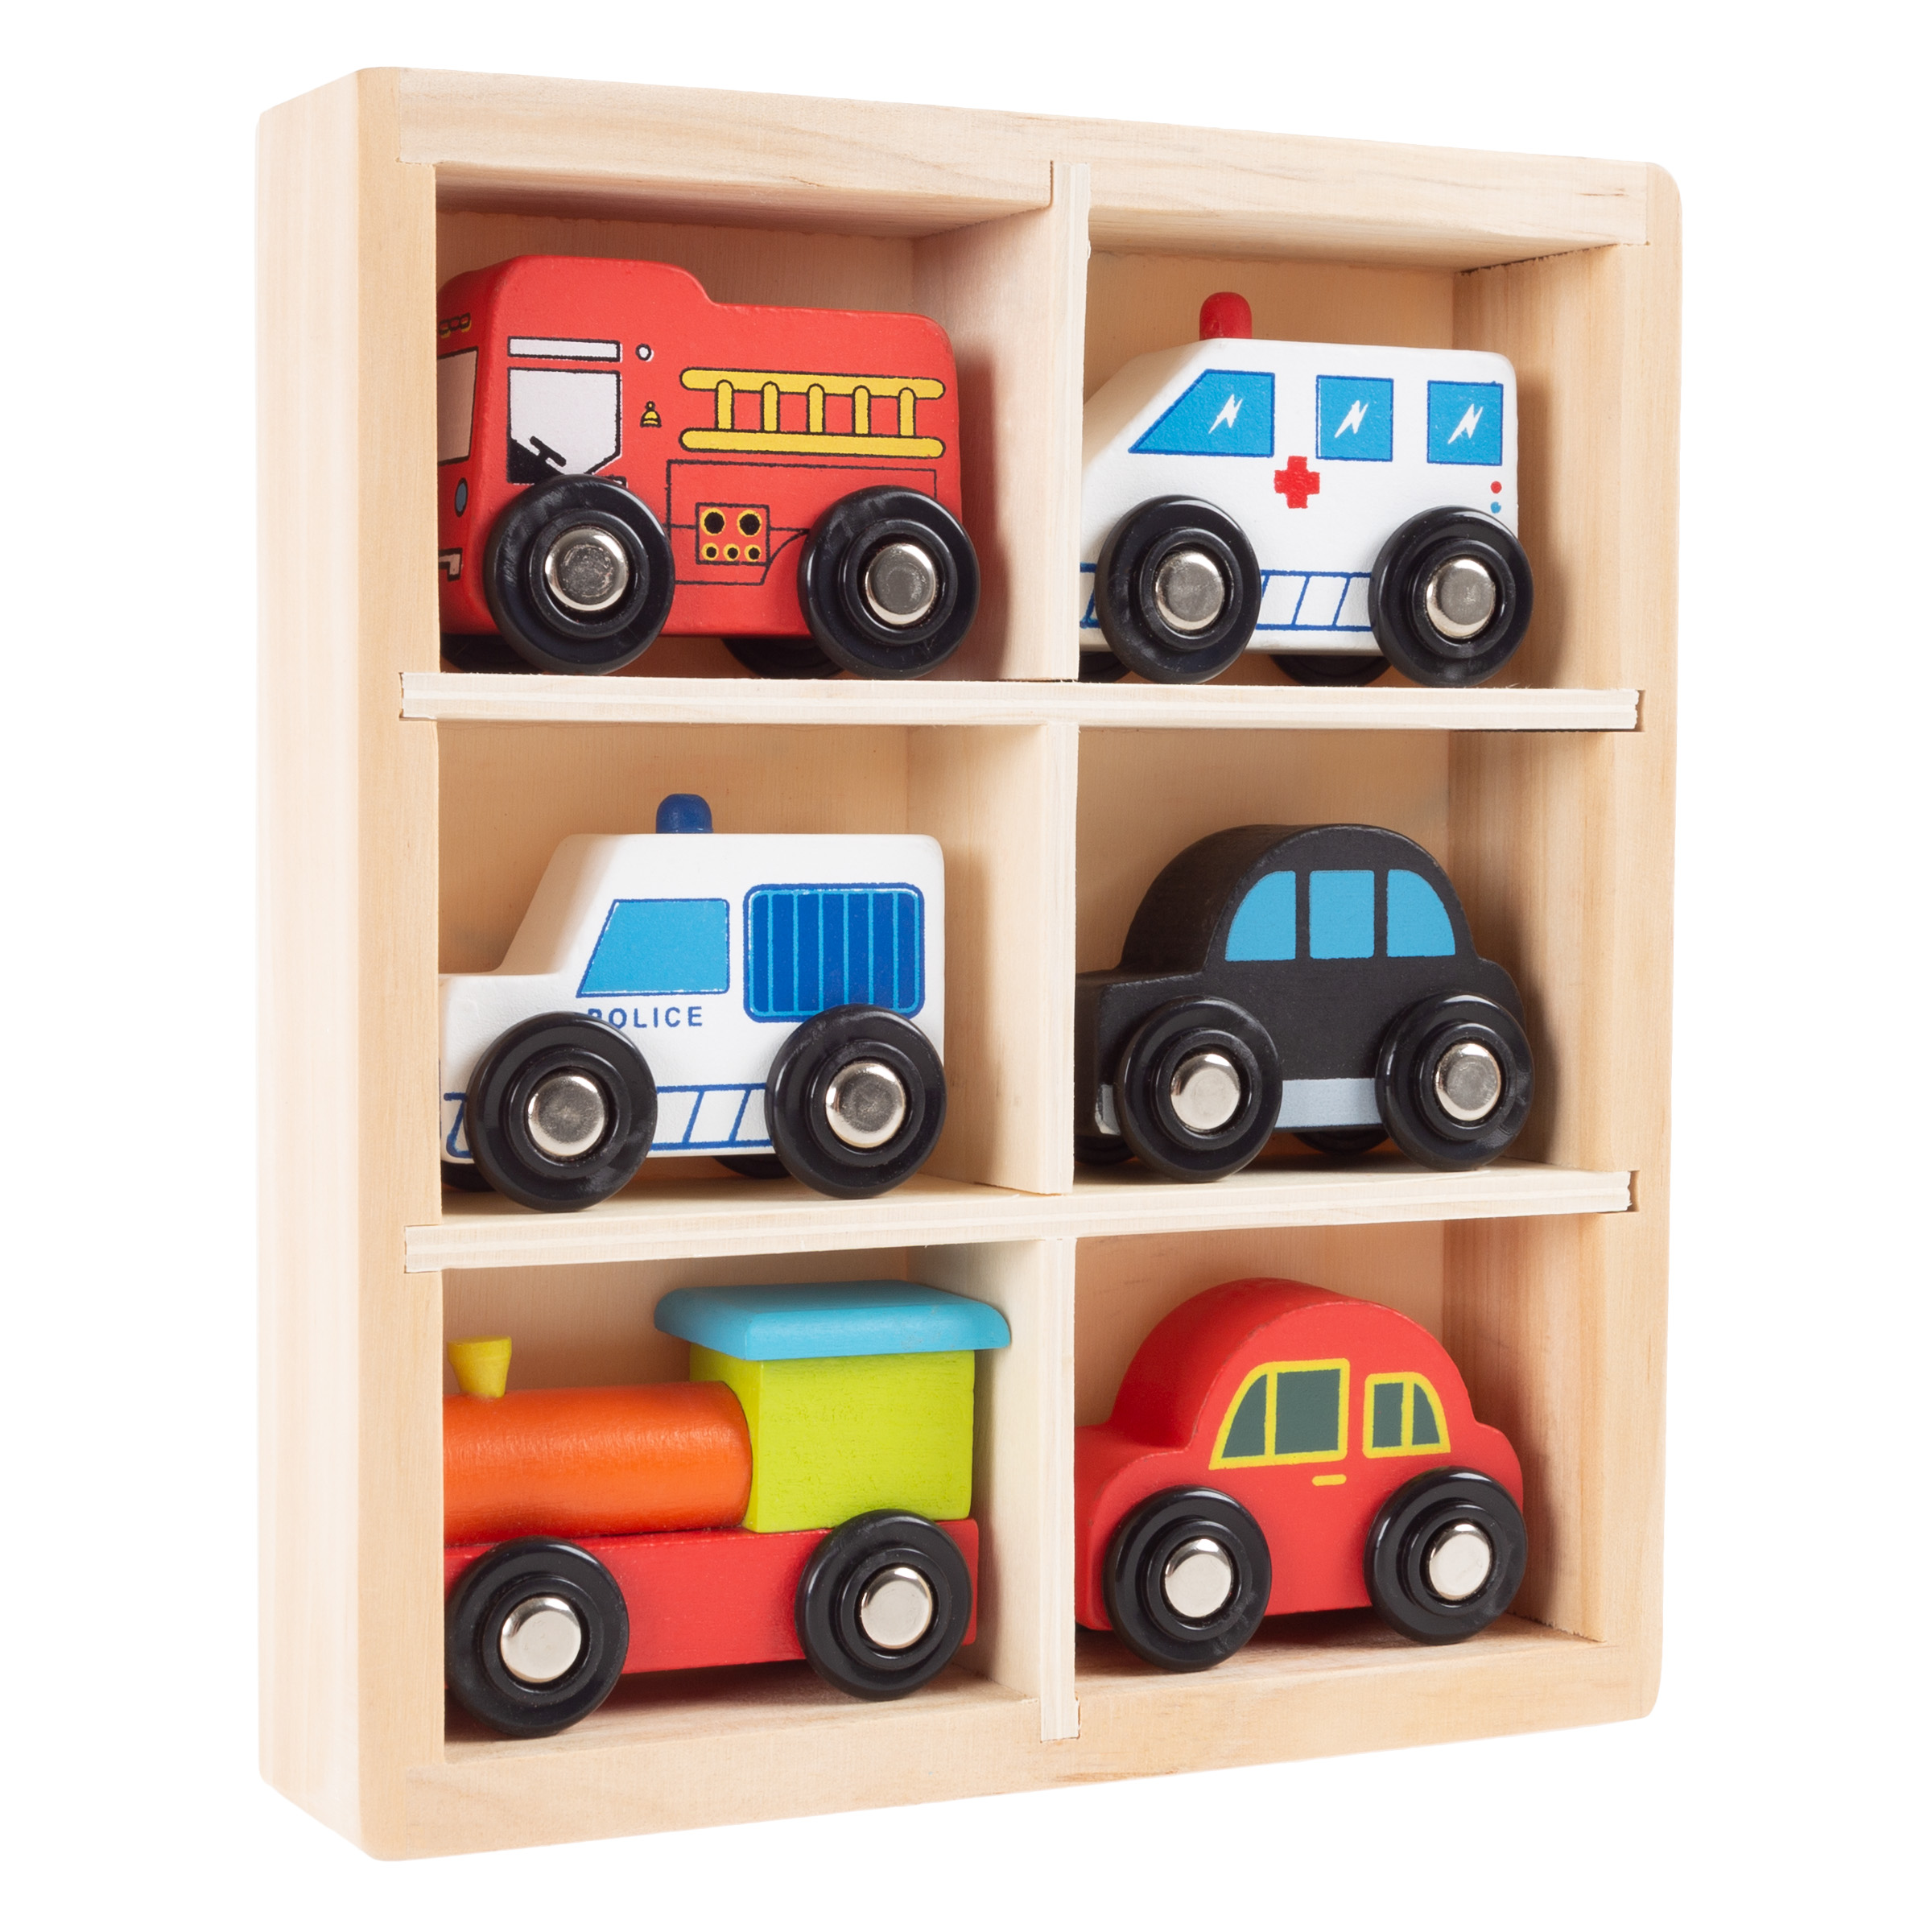 Wooden Car PlaySet-6-Piece Mini Toy Vehicle Set with Cars, Police and Fire Trucks, Train-Pretend Play Fun for... by Trademark Global LLC